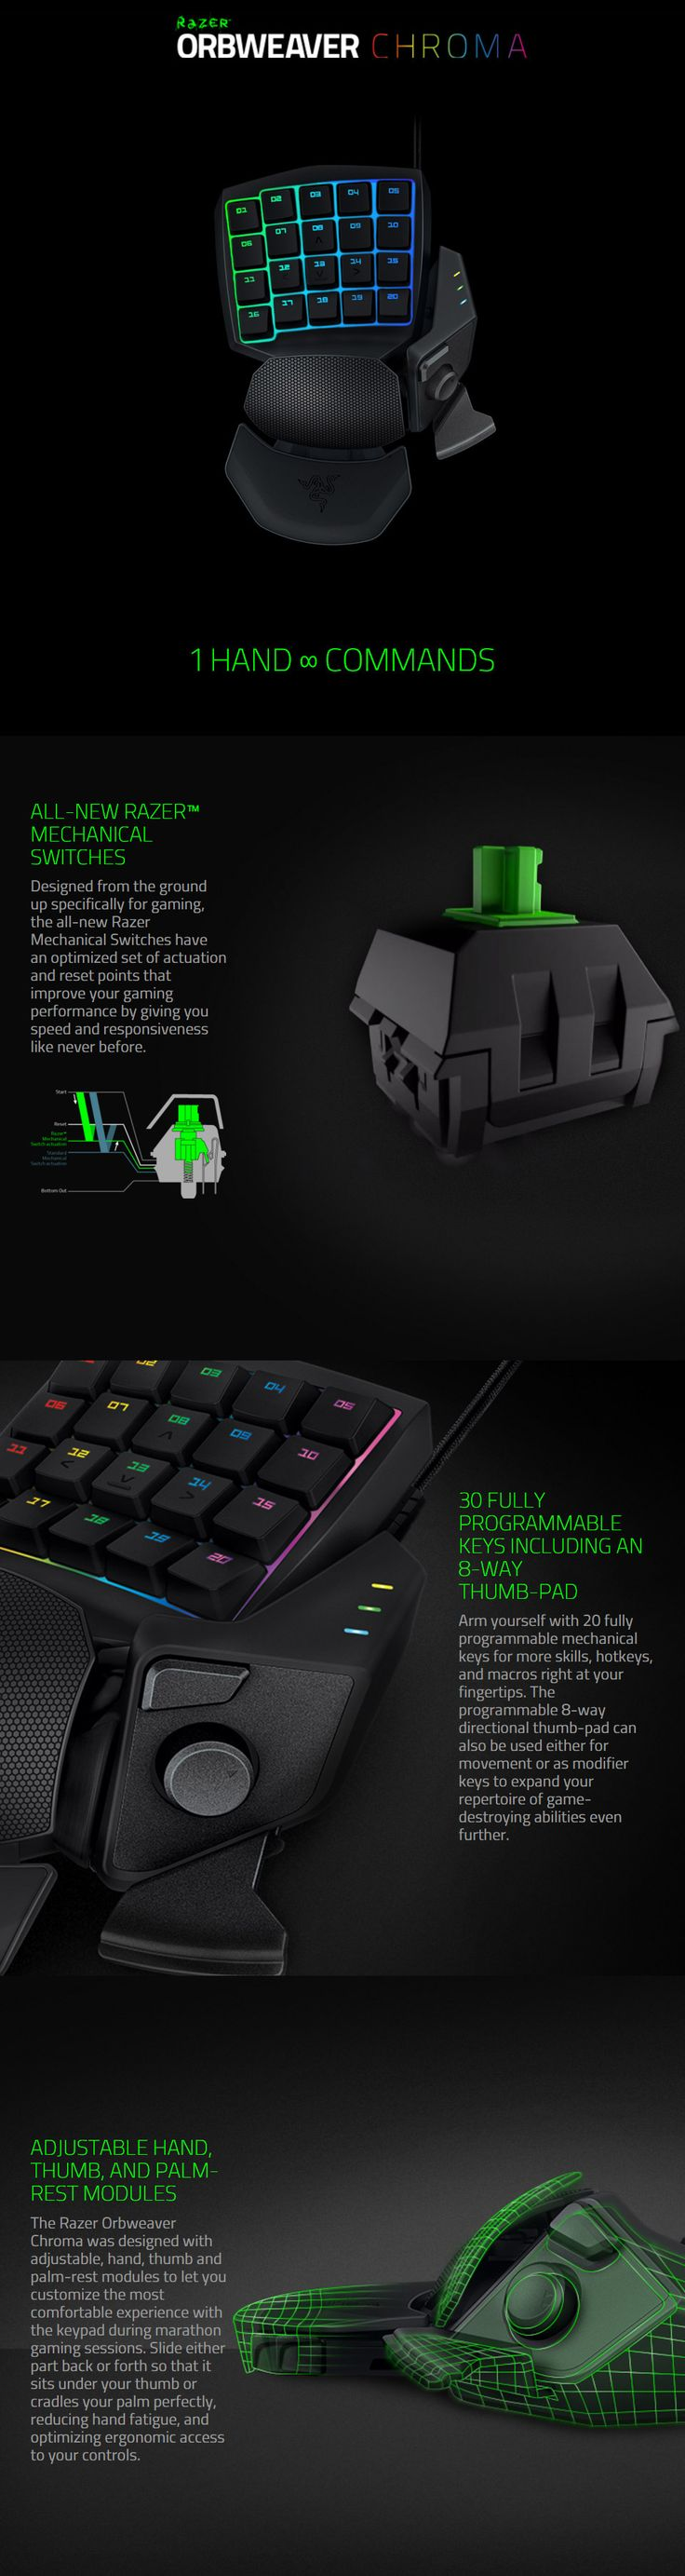 Razer Orbweaver Chroma Mechanical Gaming Keypad available to buy online from PC Case Gear – Australia's Premier Online PC Store.